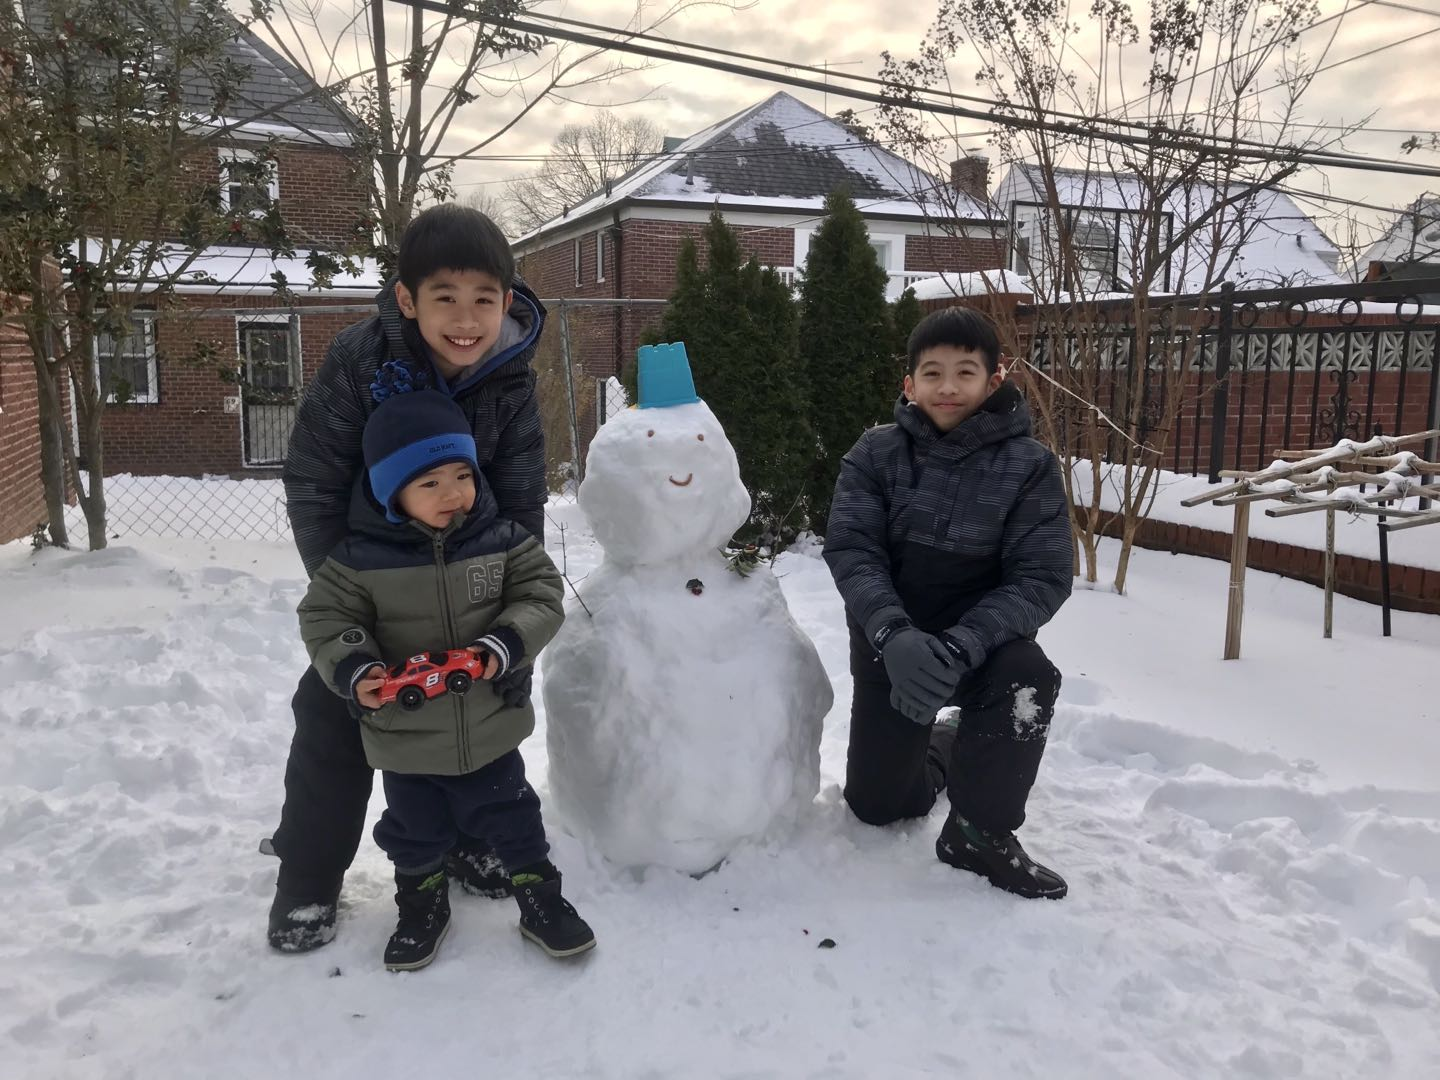 Three kids standing next to a snowman with a blue hat